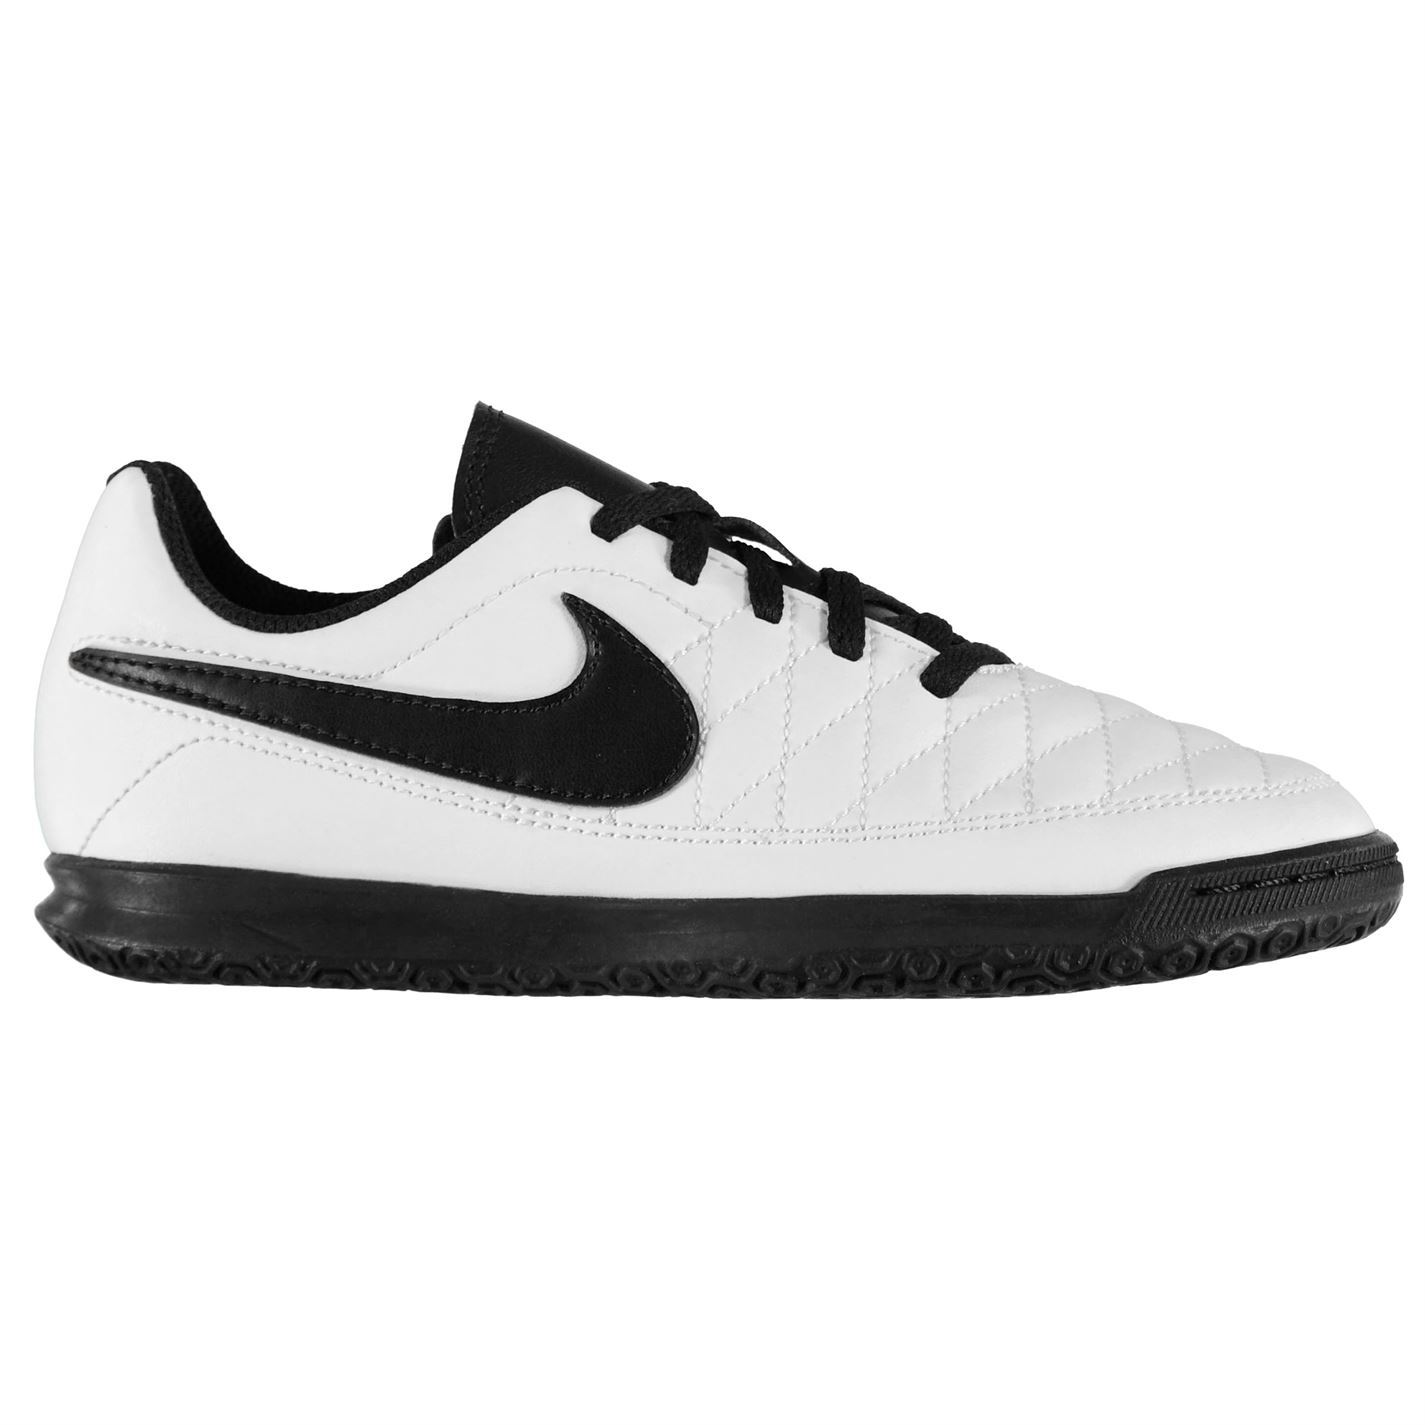 Nike-majestry-Indoor-Court-Football-Baskets-enfant-foot-baskets-chaussures miniature 16